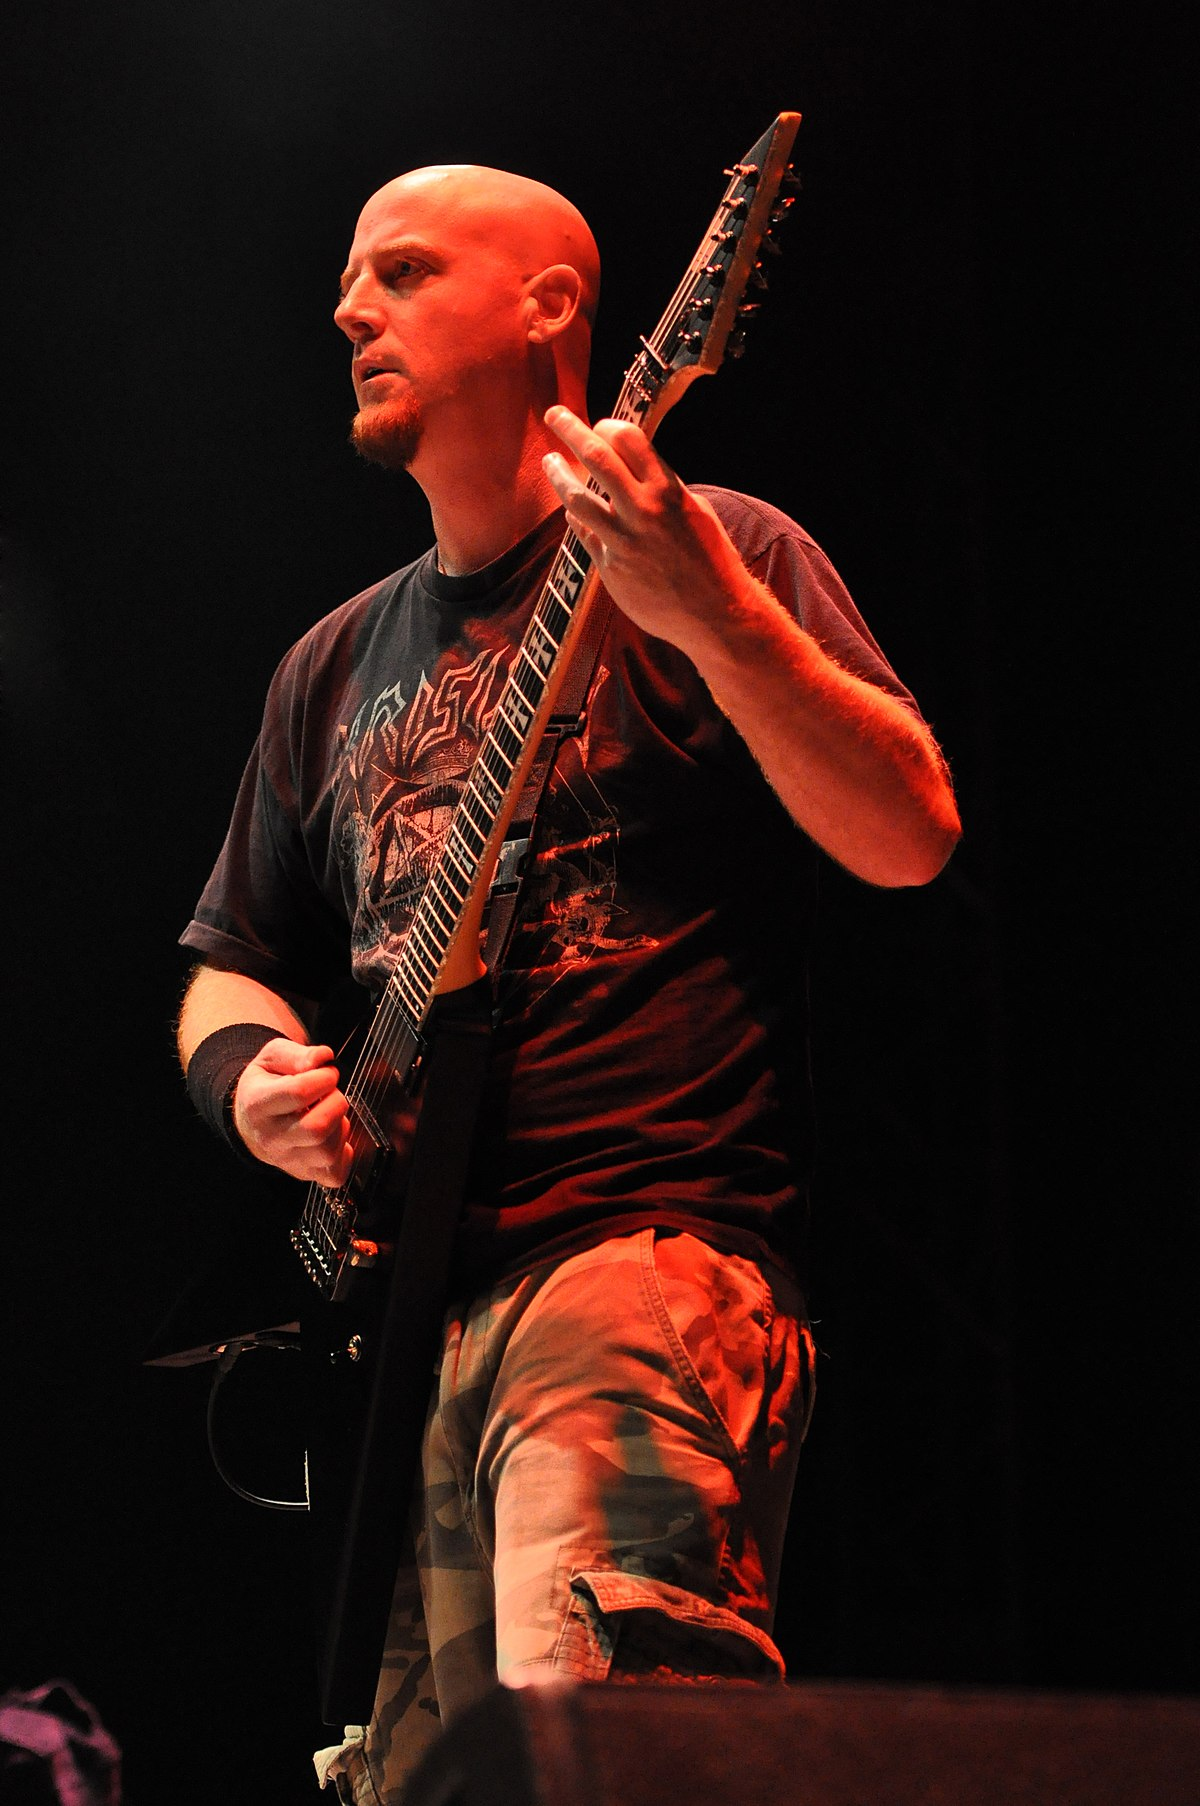 Dying Fetus Purification Through Violence